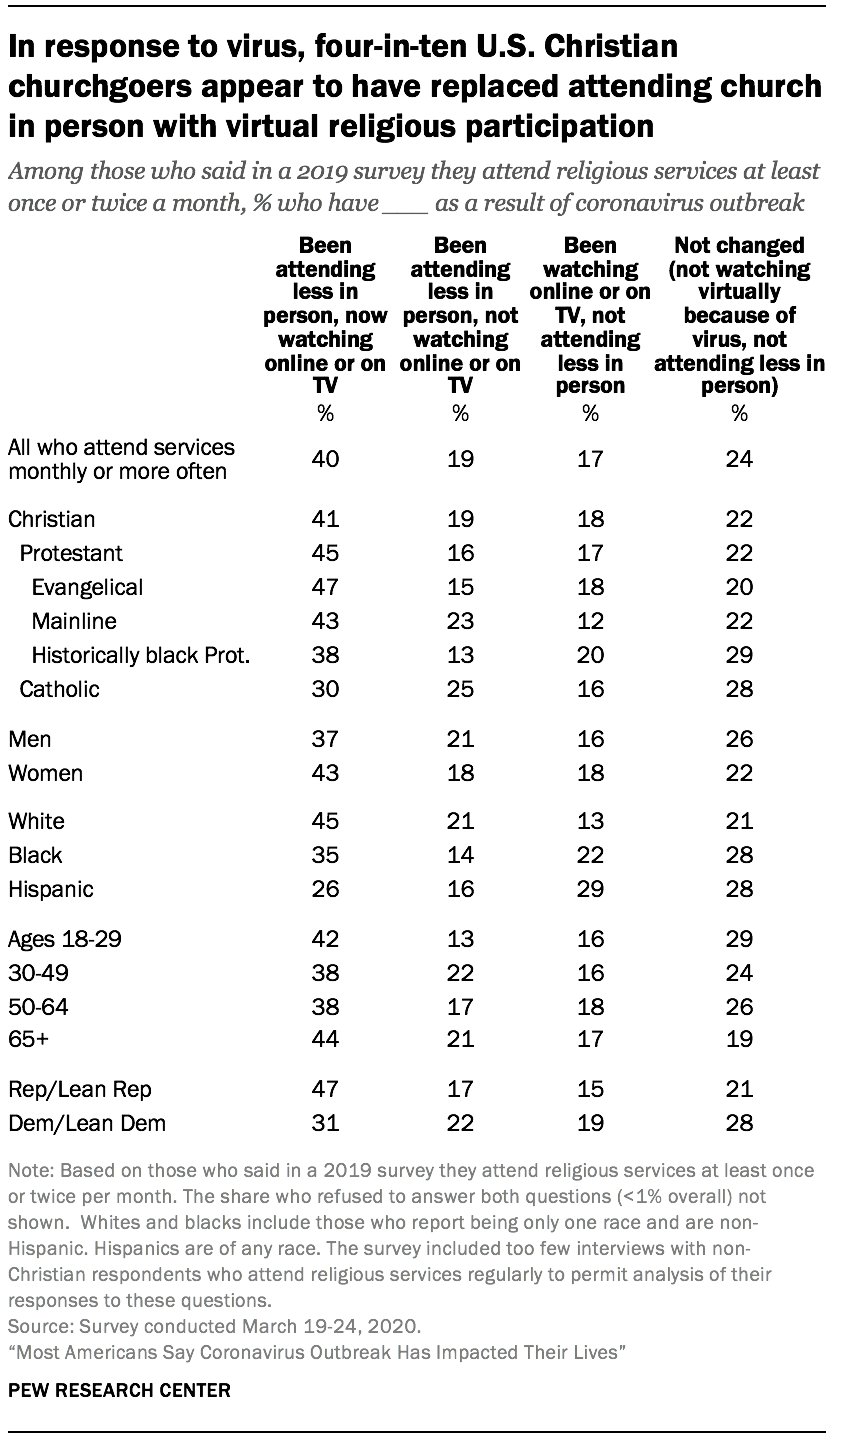 In response to virus, four-in-ten U.S. Christian churchgoers appear to have replaced attending church in person with virtual religious participation